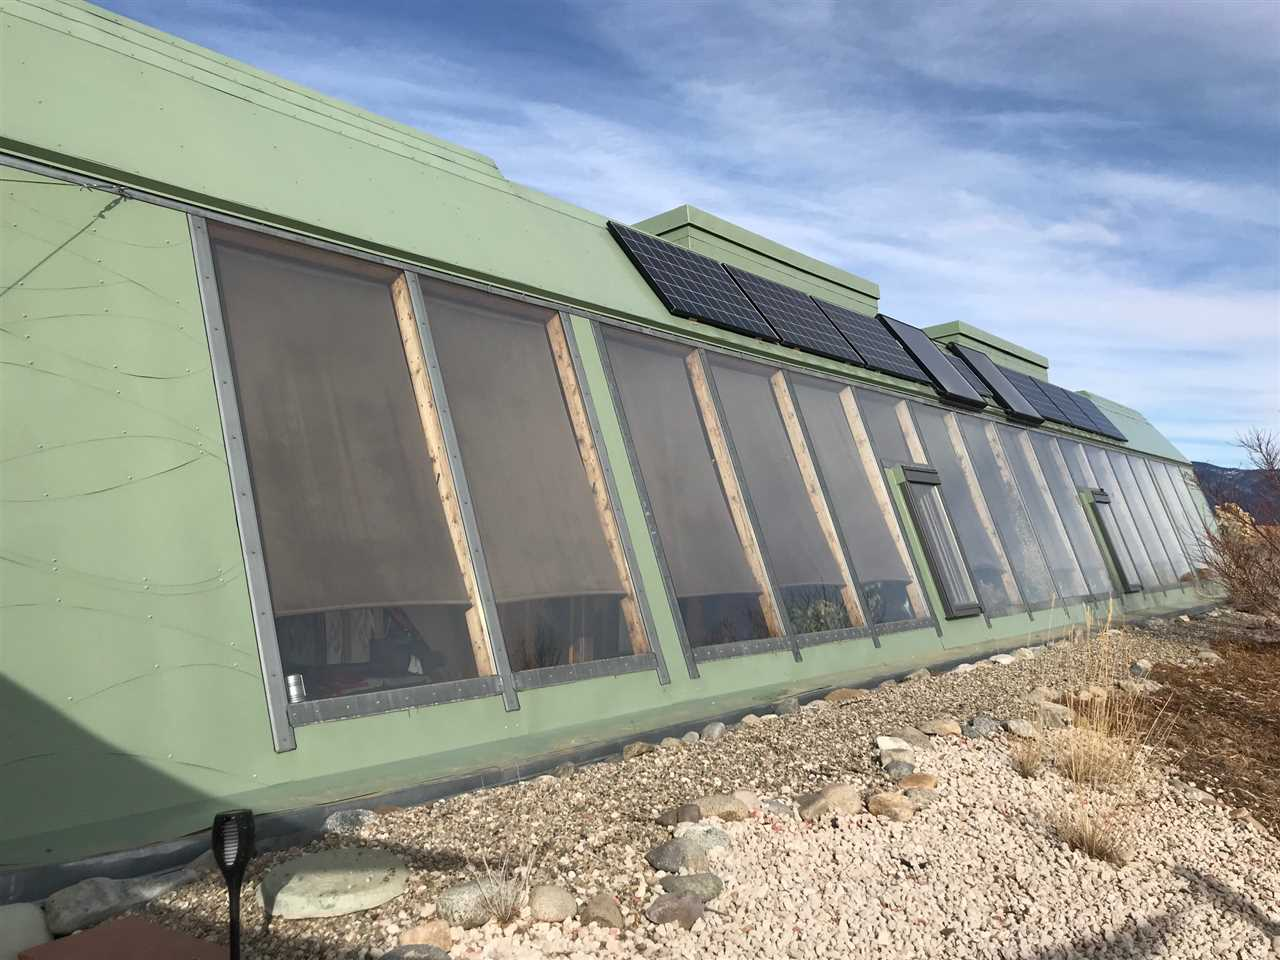 137 Earthship Way, Taos, NM 87571